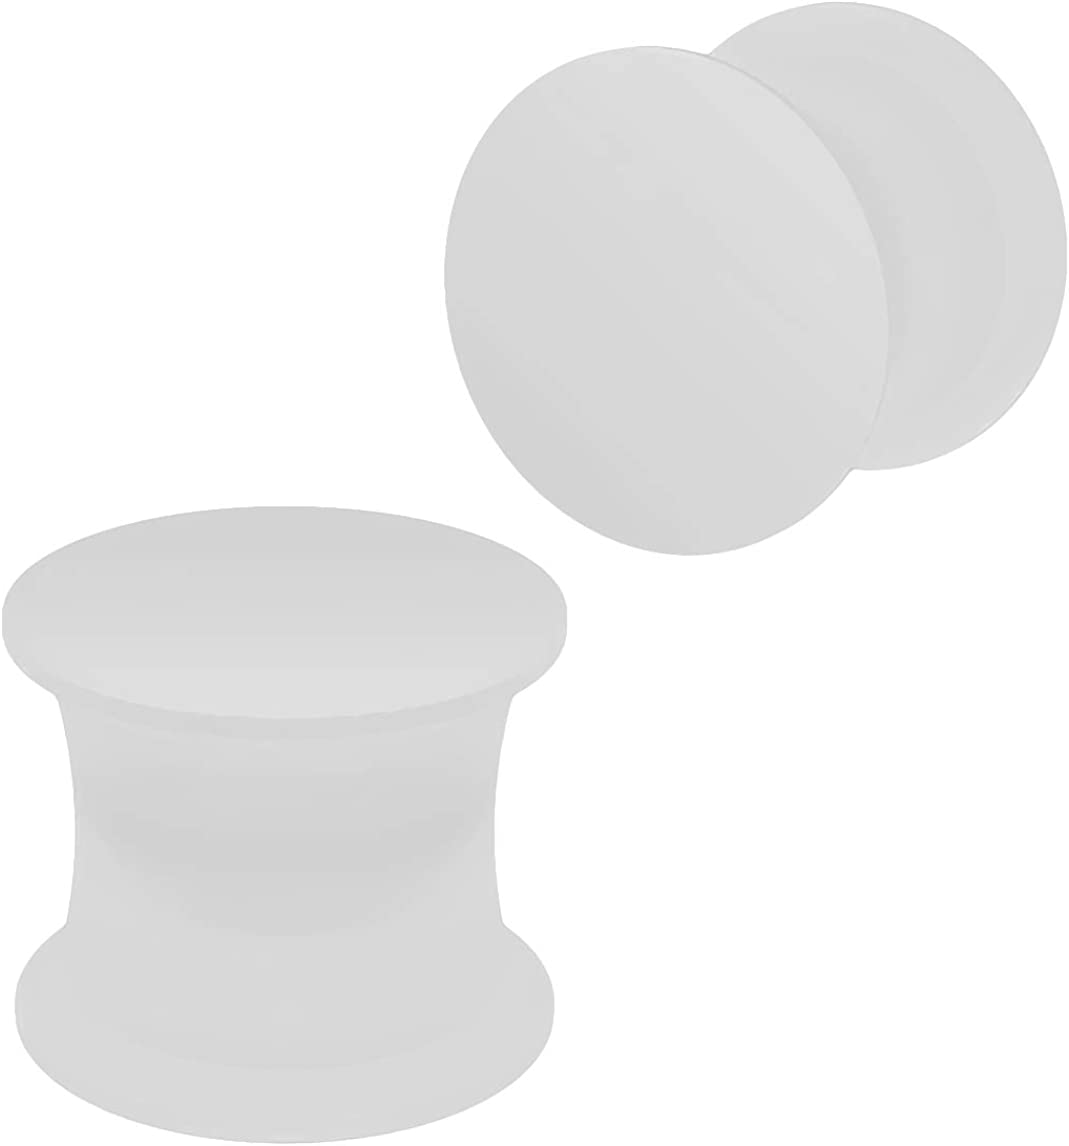 2pc Silicone White Double Flared Saddle Earring Ear Stretcher Gauge Plug Lobe Earring Piercing Jewelry